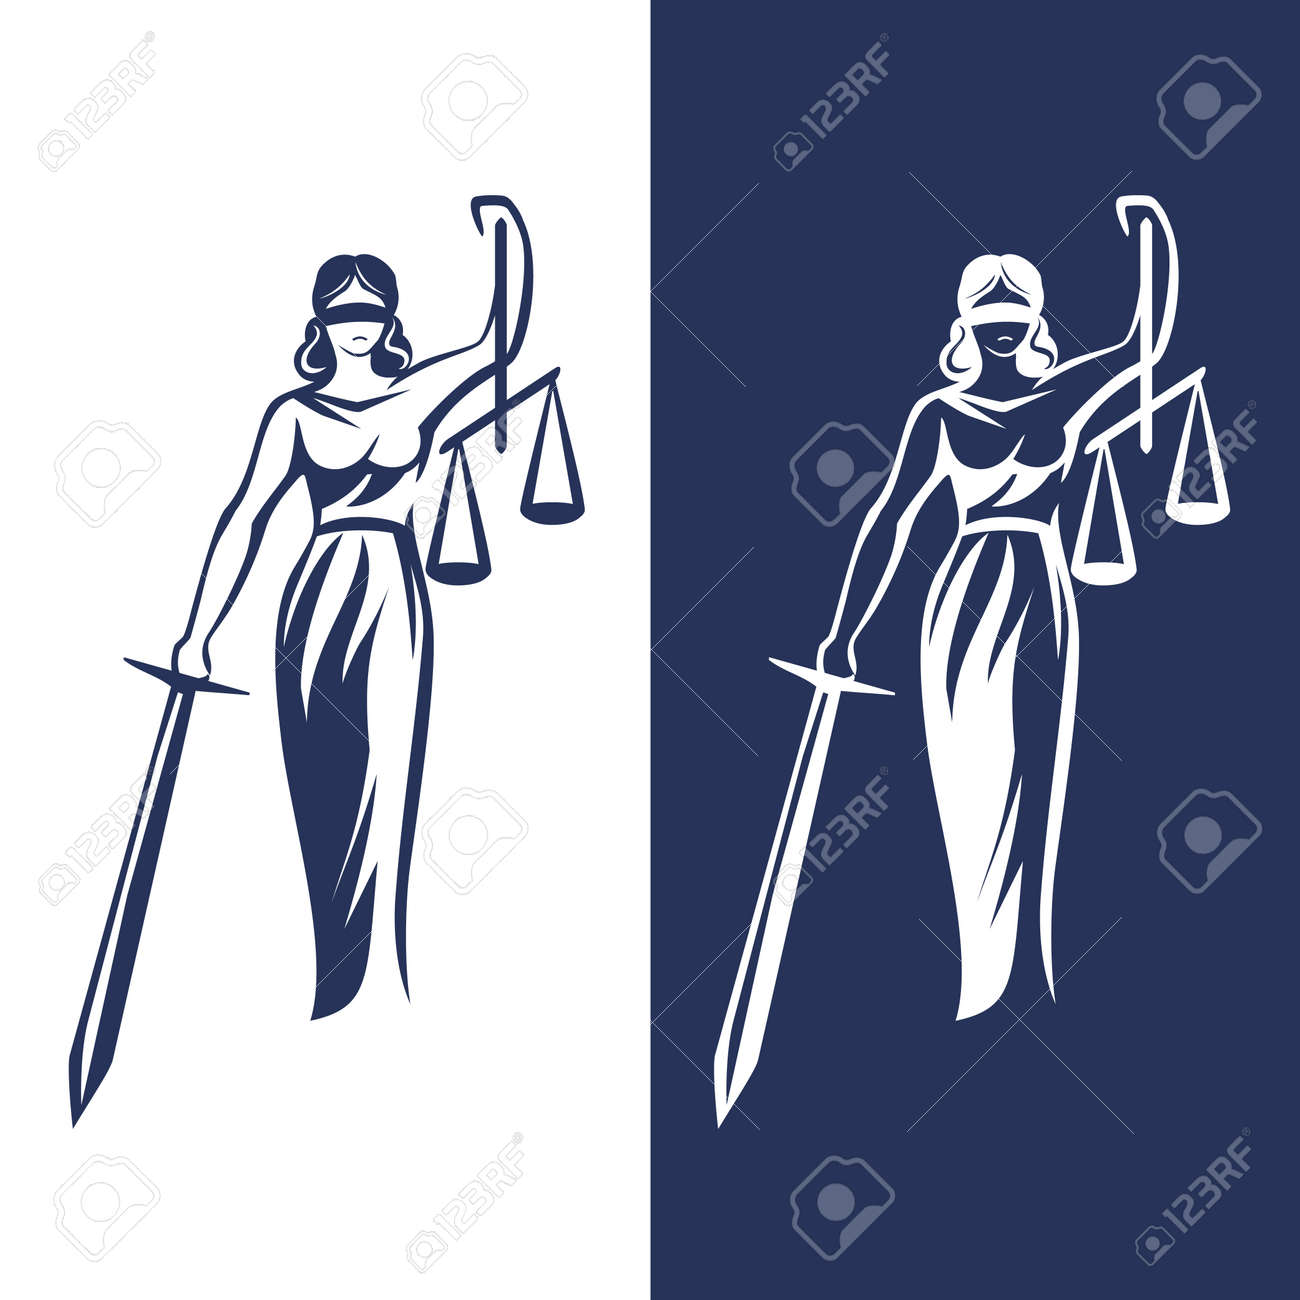 lady justice statue on light and dark background, Vector illustration. - 96637229